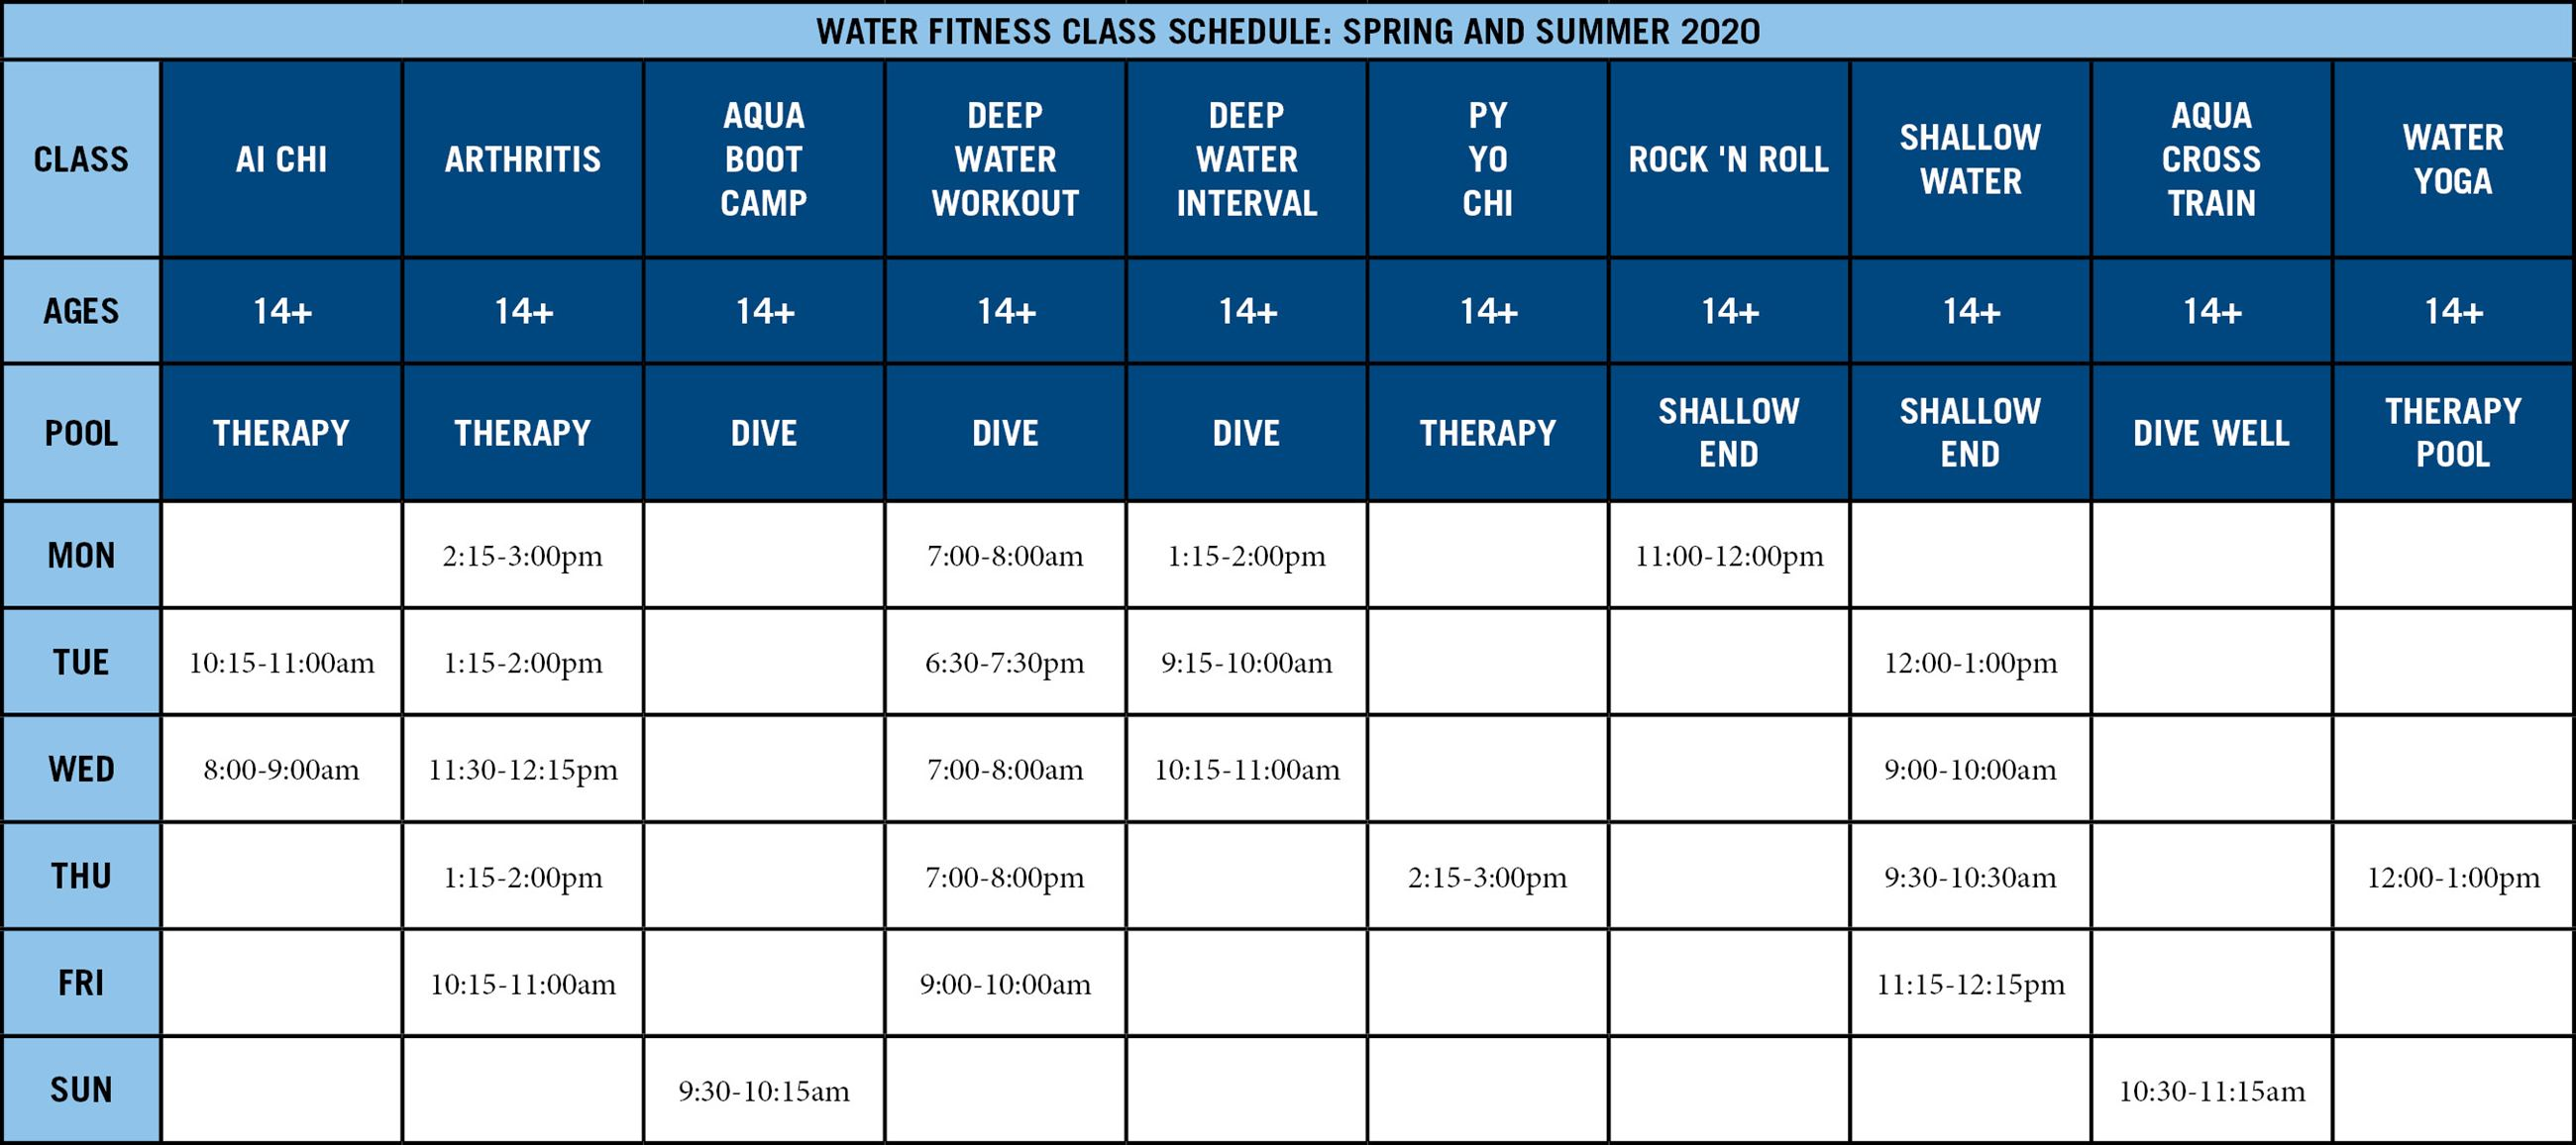 Water Fitness Class Schedule Spring Summer 2020